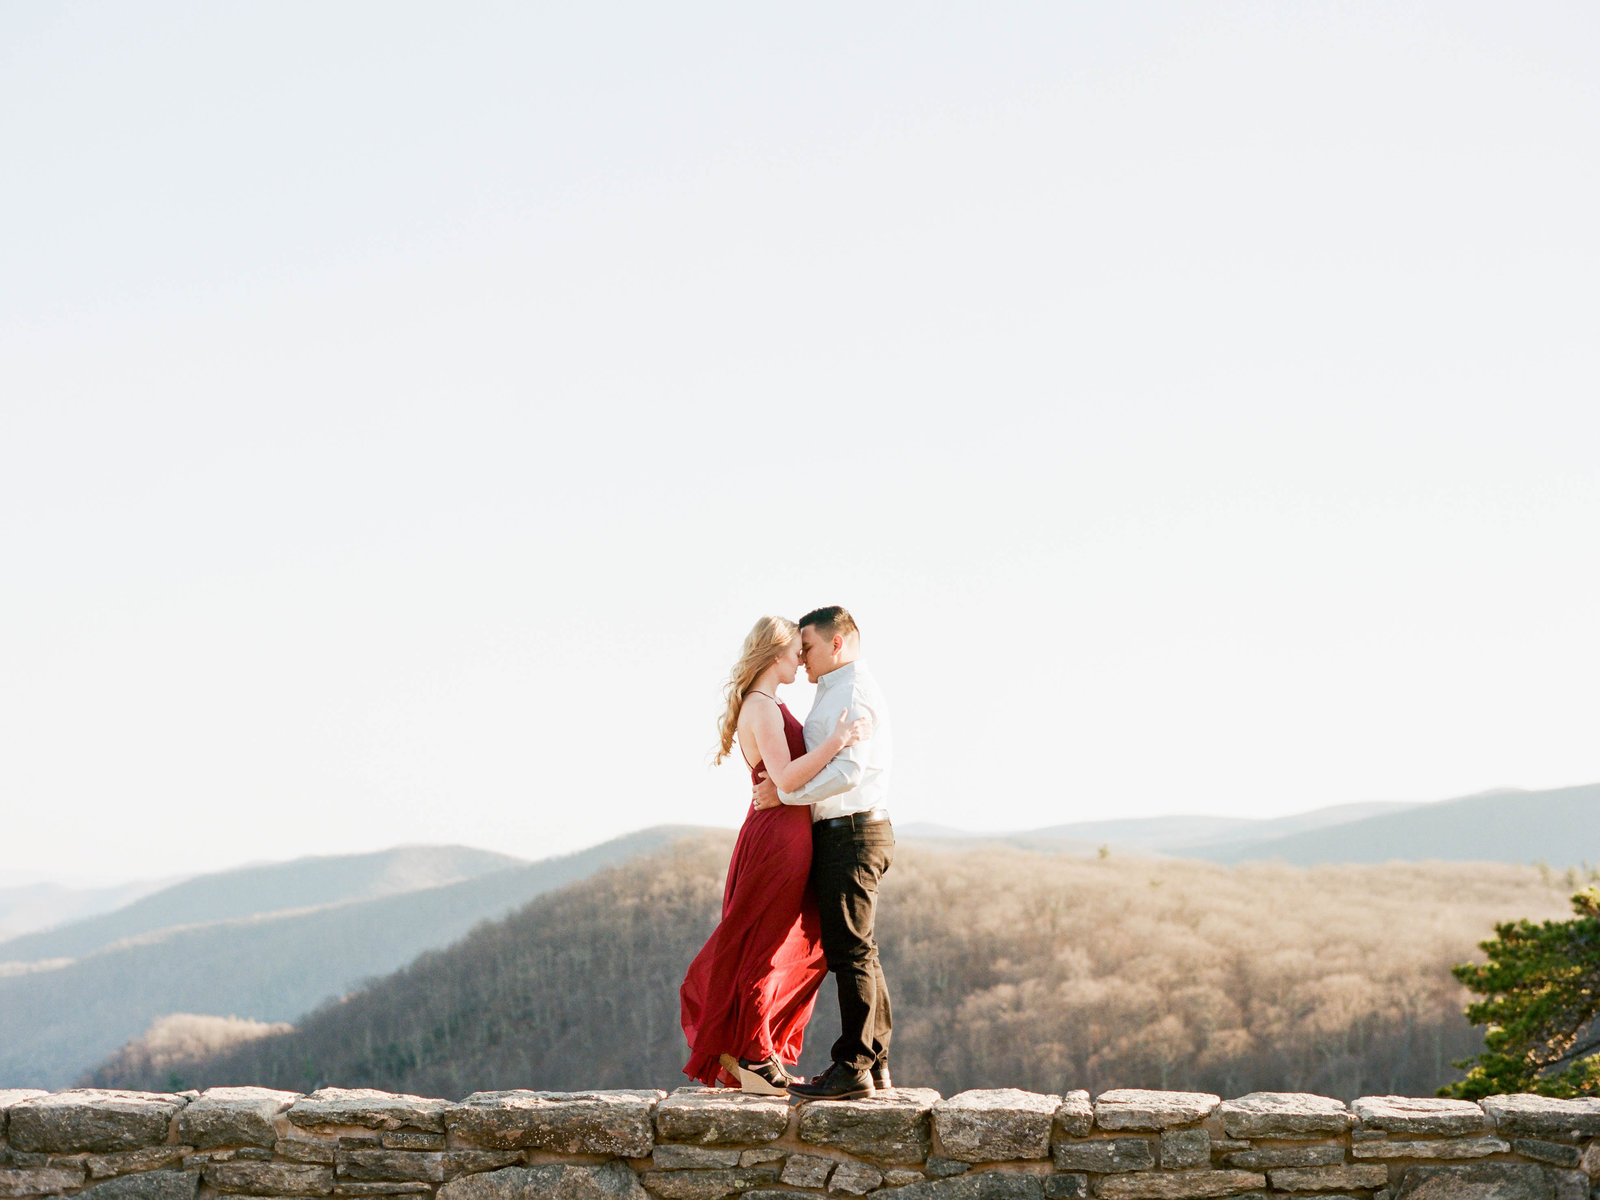 Klaire-Dixius-Photography-Virginia-Wedding-Photographer-Shenandoah-Valley-Skyline-Drive-Engagement-Session-Fredy-Kaila-Film-19